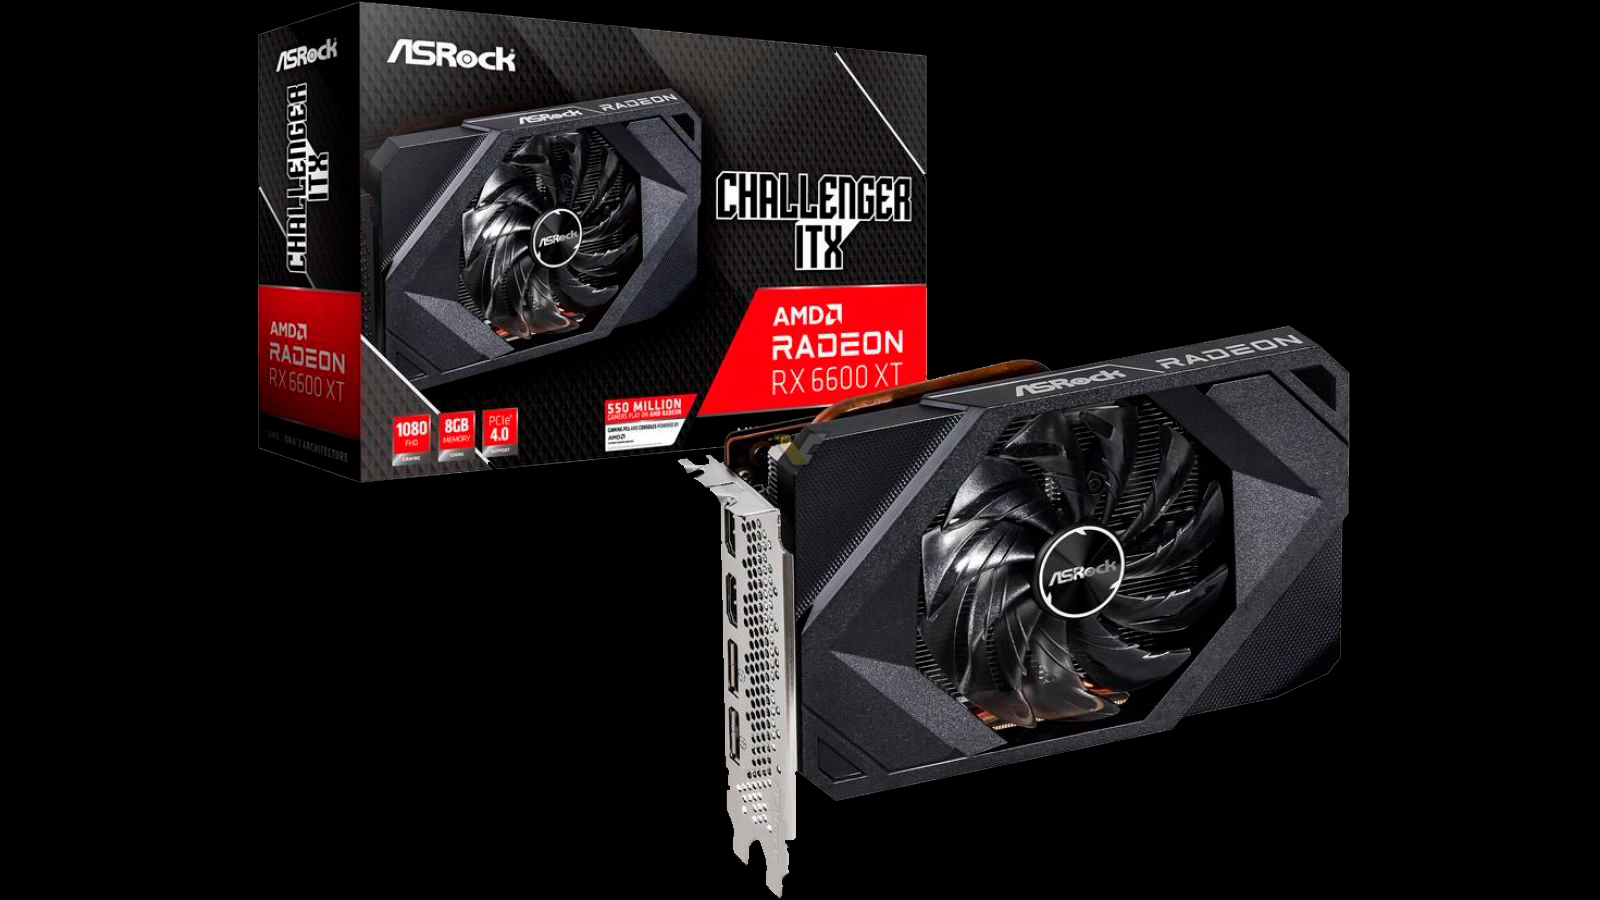 ASRock Intros The First Mini-ITX Graphics Card Powered by RDNA 2, The Radeon RX 6600 XT Challenger ITX